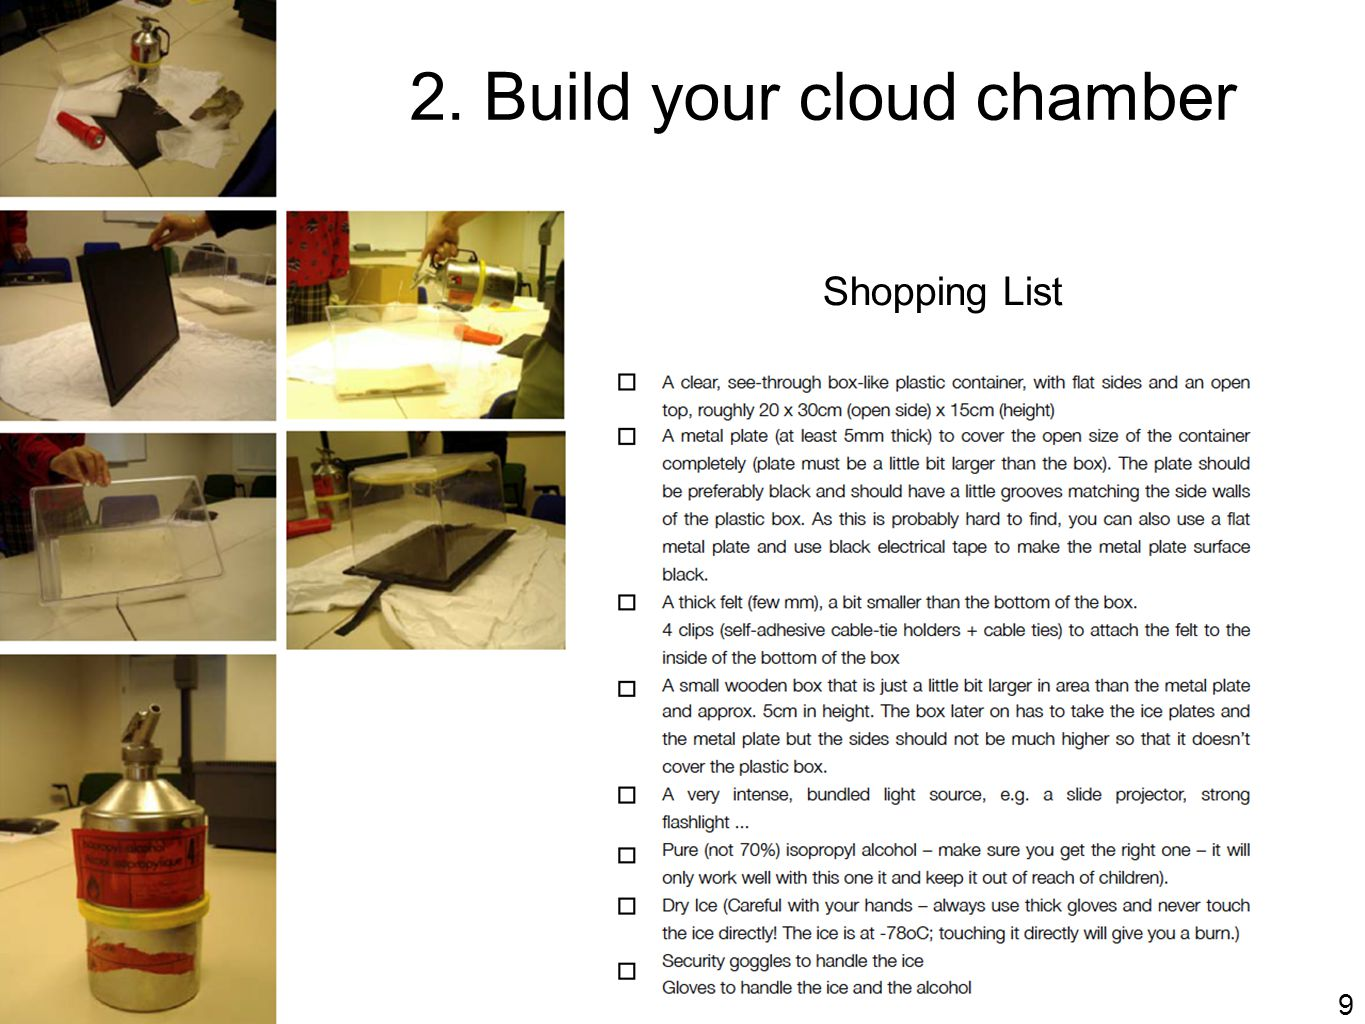 2. Build your cloud chamber